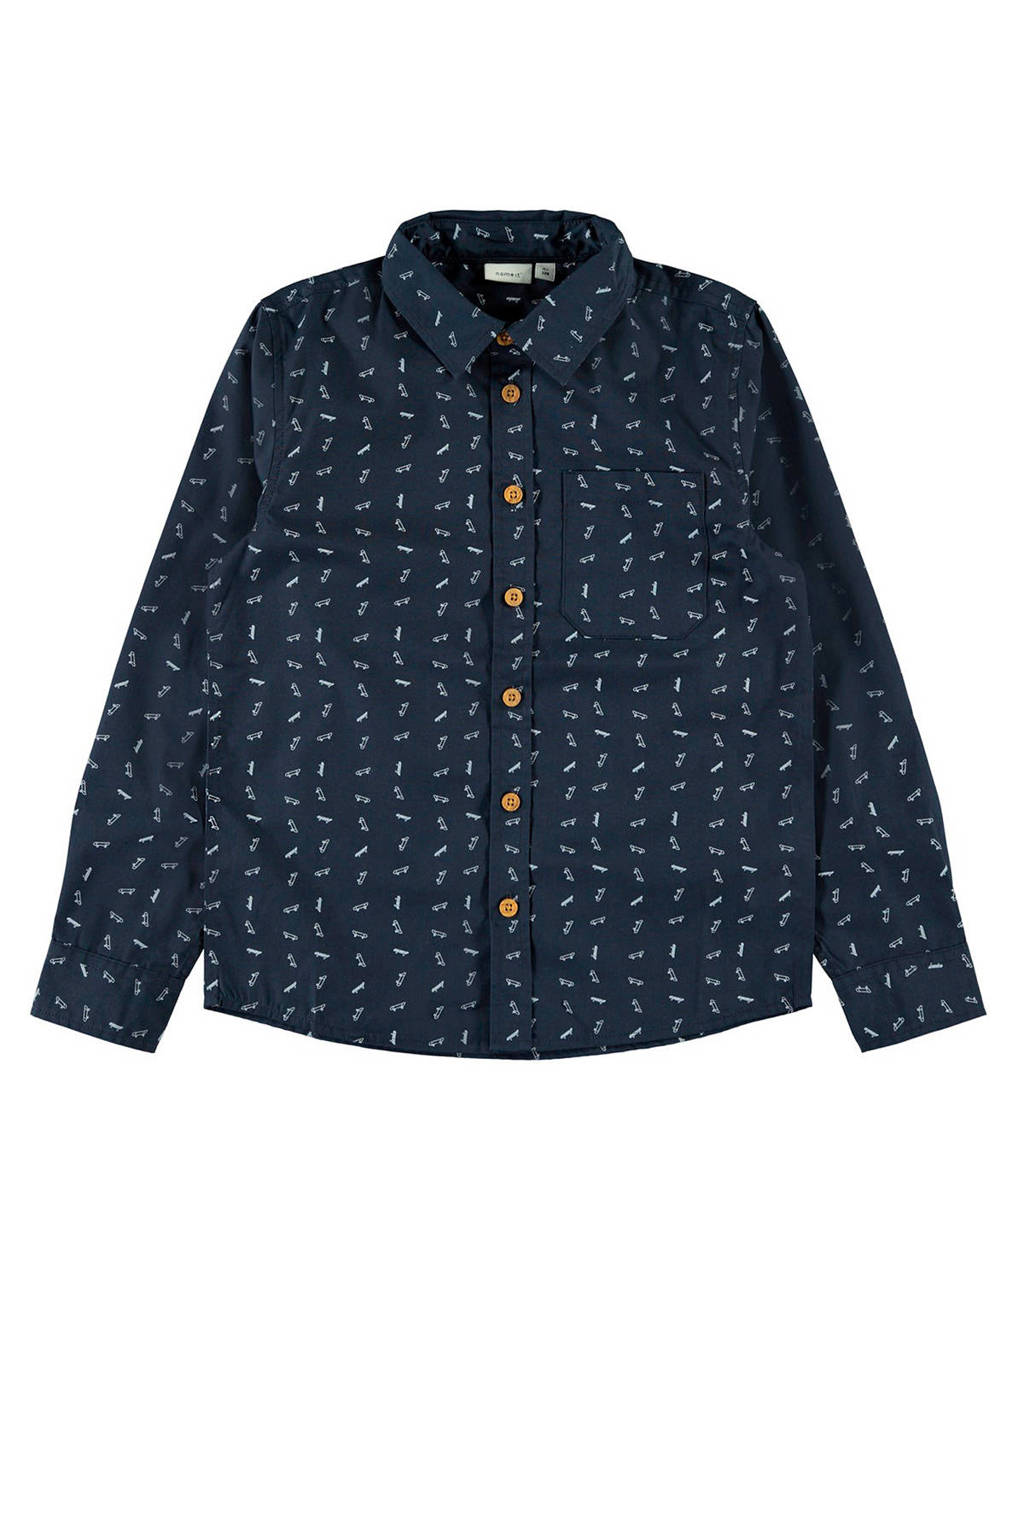 NAME IT KIDS overhemd met all over print donkerblauw/wit, Donkerblauw/wit